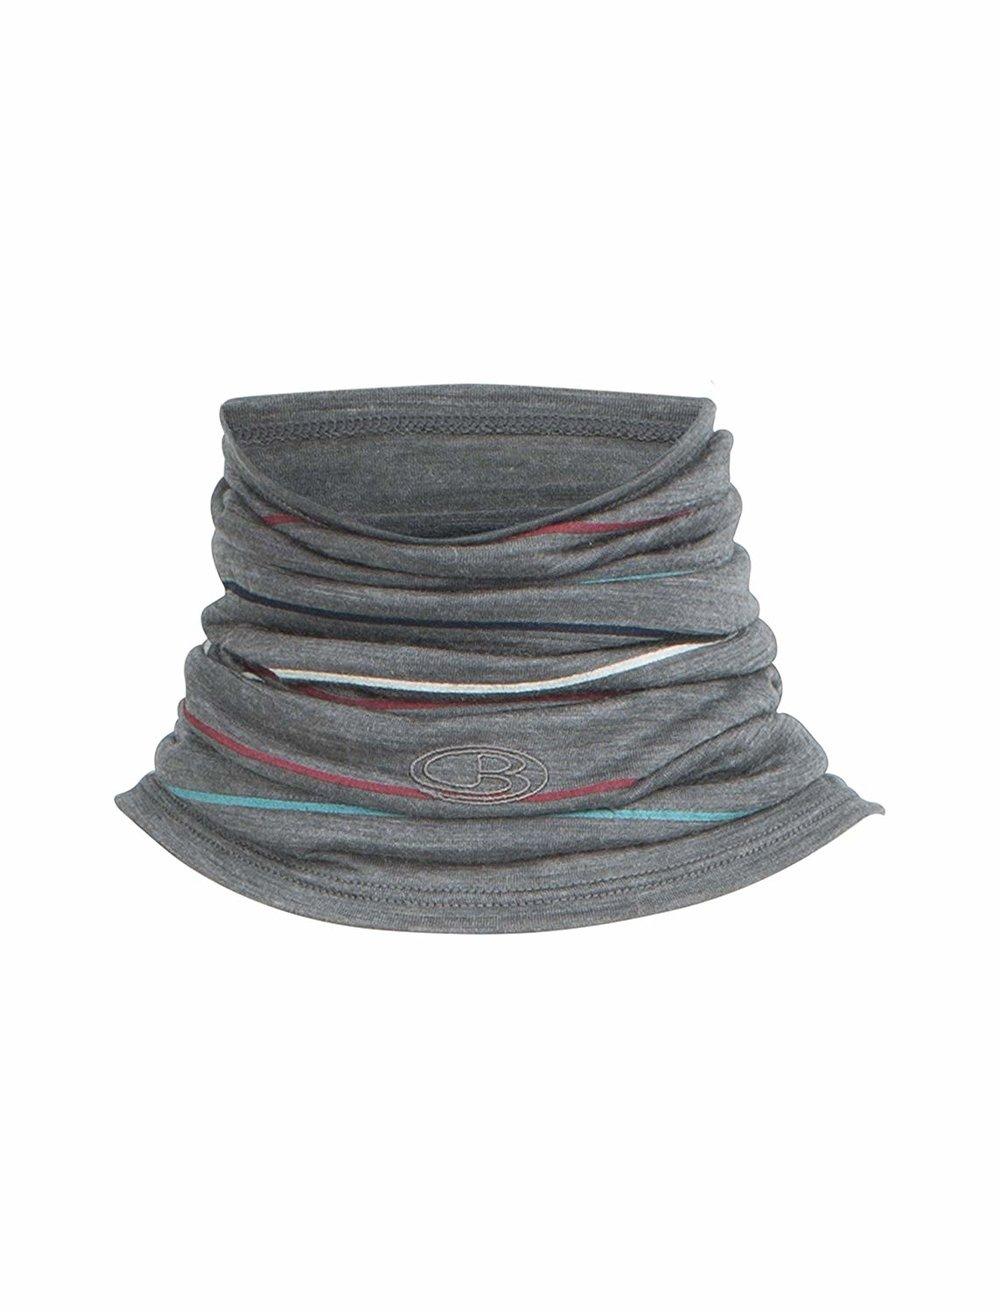 Neck Gaiter - So many options, styles, and prices out there so go have fun finding one you like! Neck gaiters come in handy for cool mornings and evenings or to keep the sun off the face.